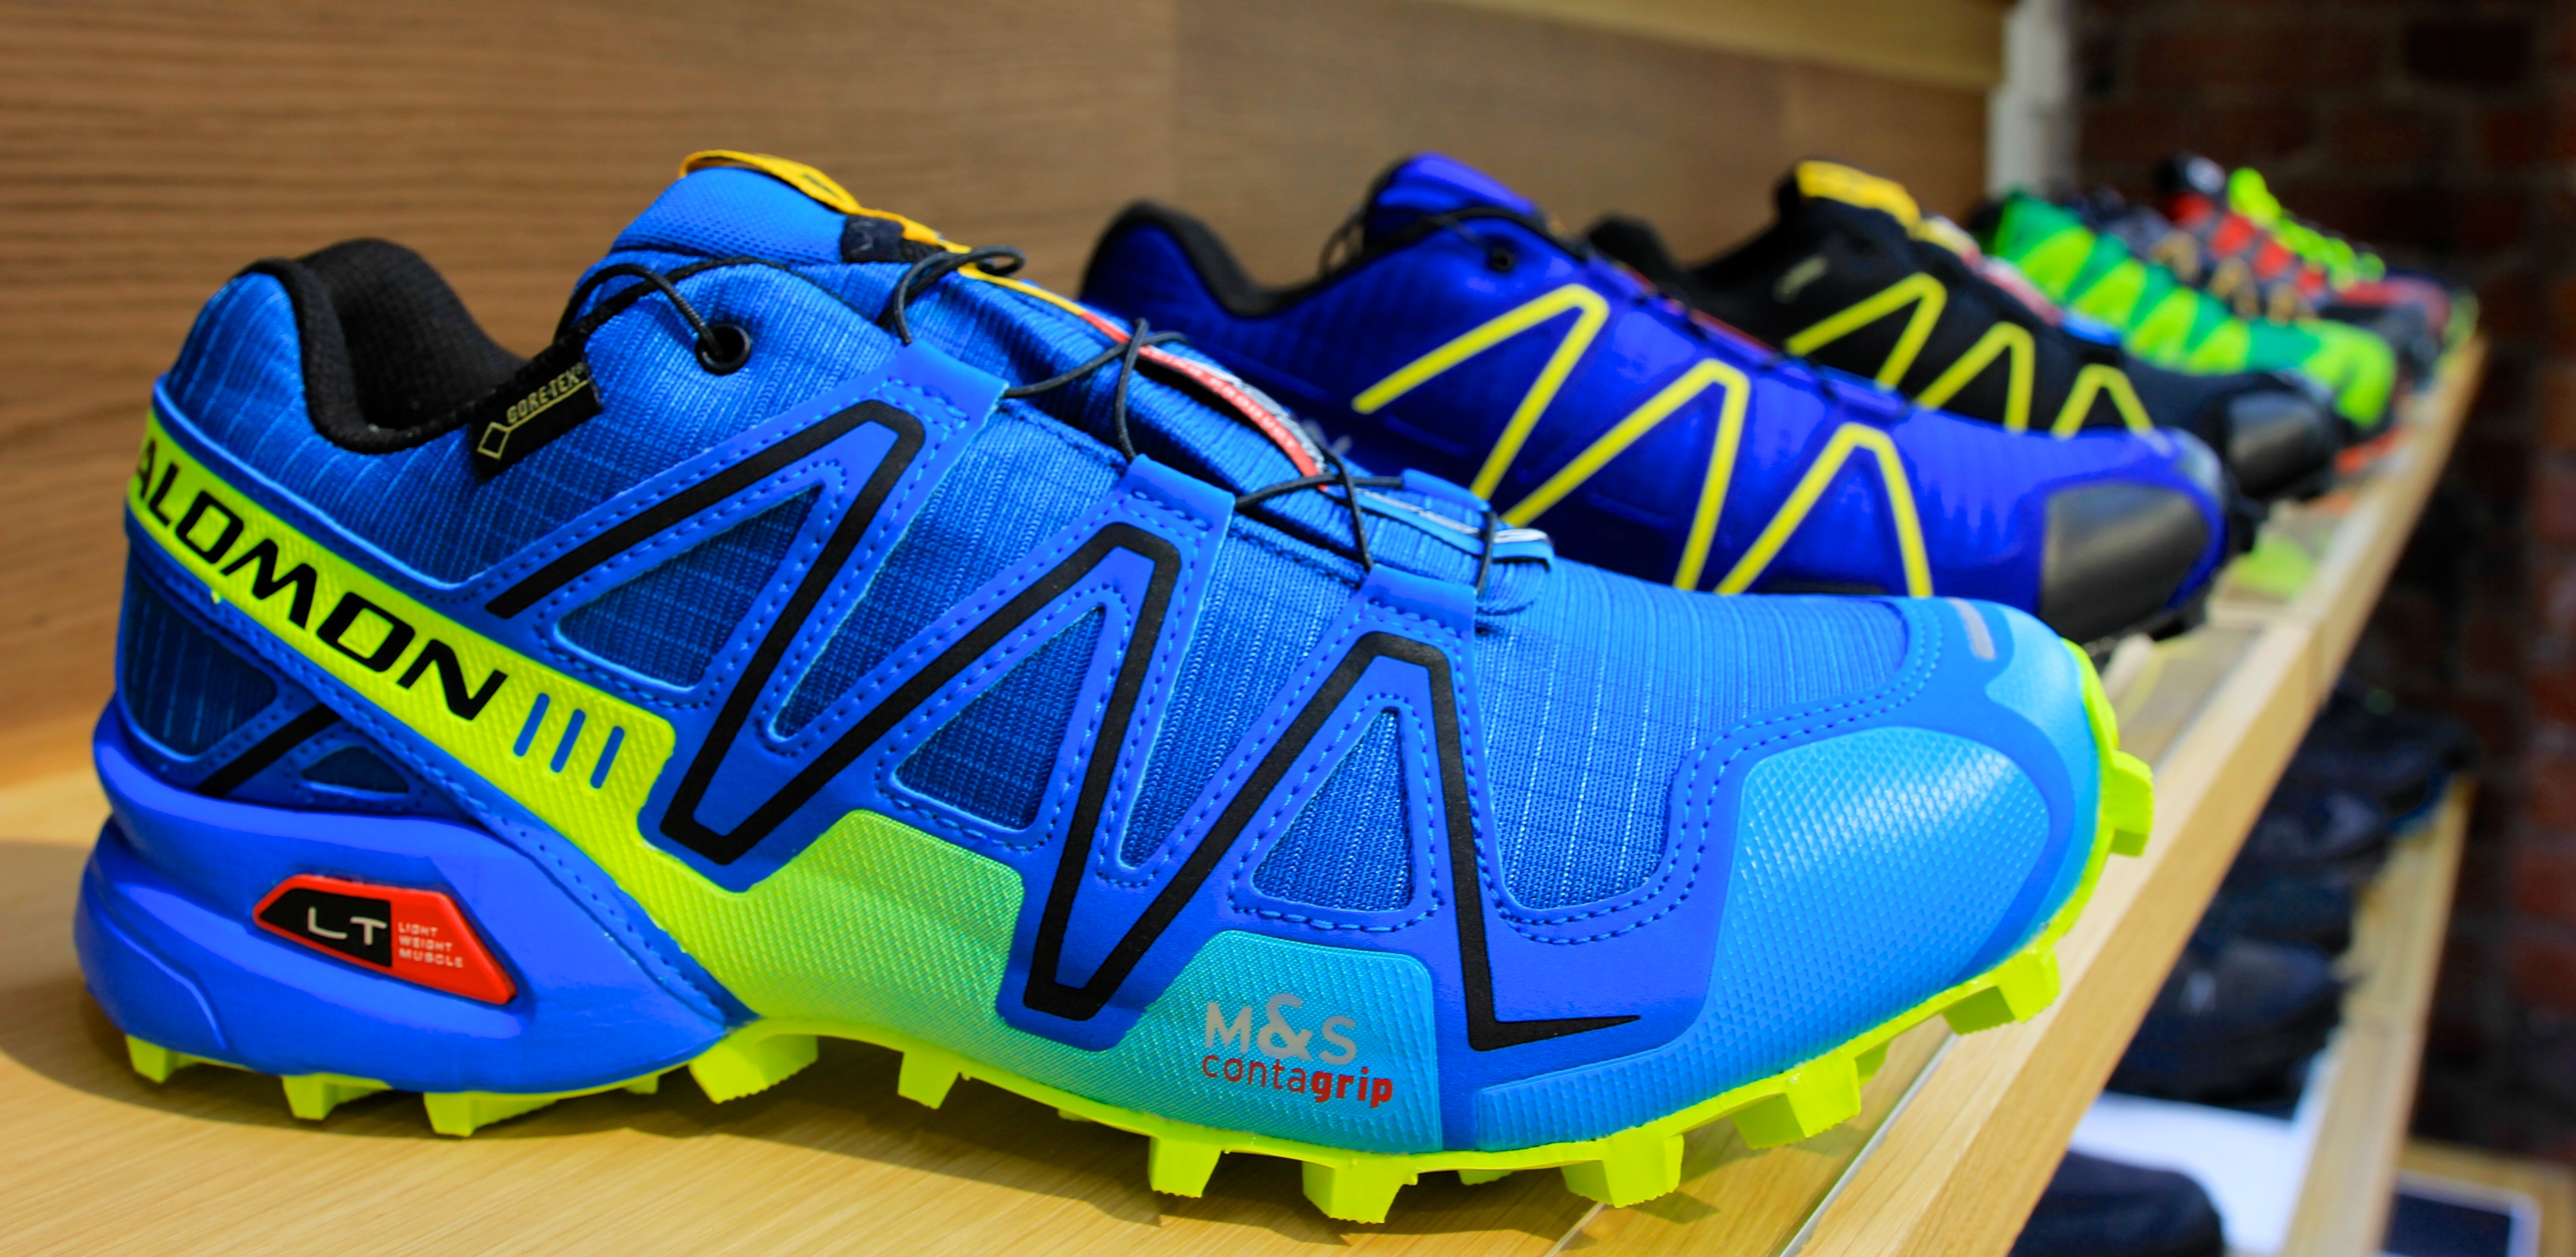 release date efb8d 0c671 amer-sports-brand-store-salomon-shoes | Amer Sports